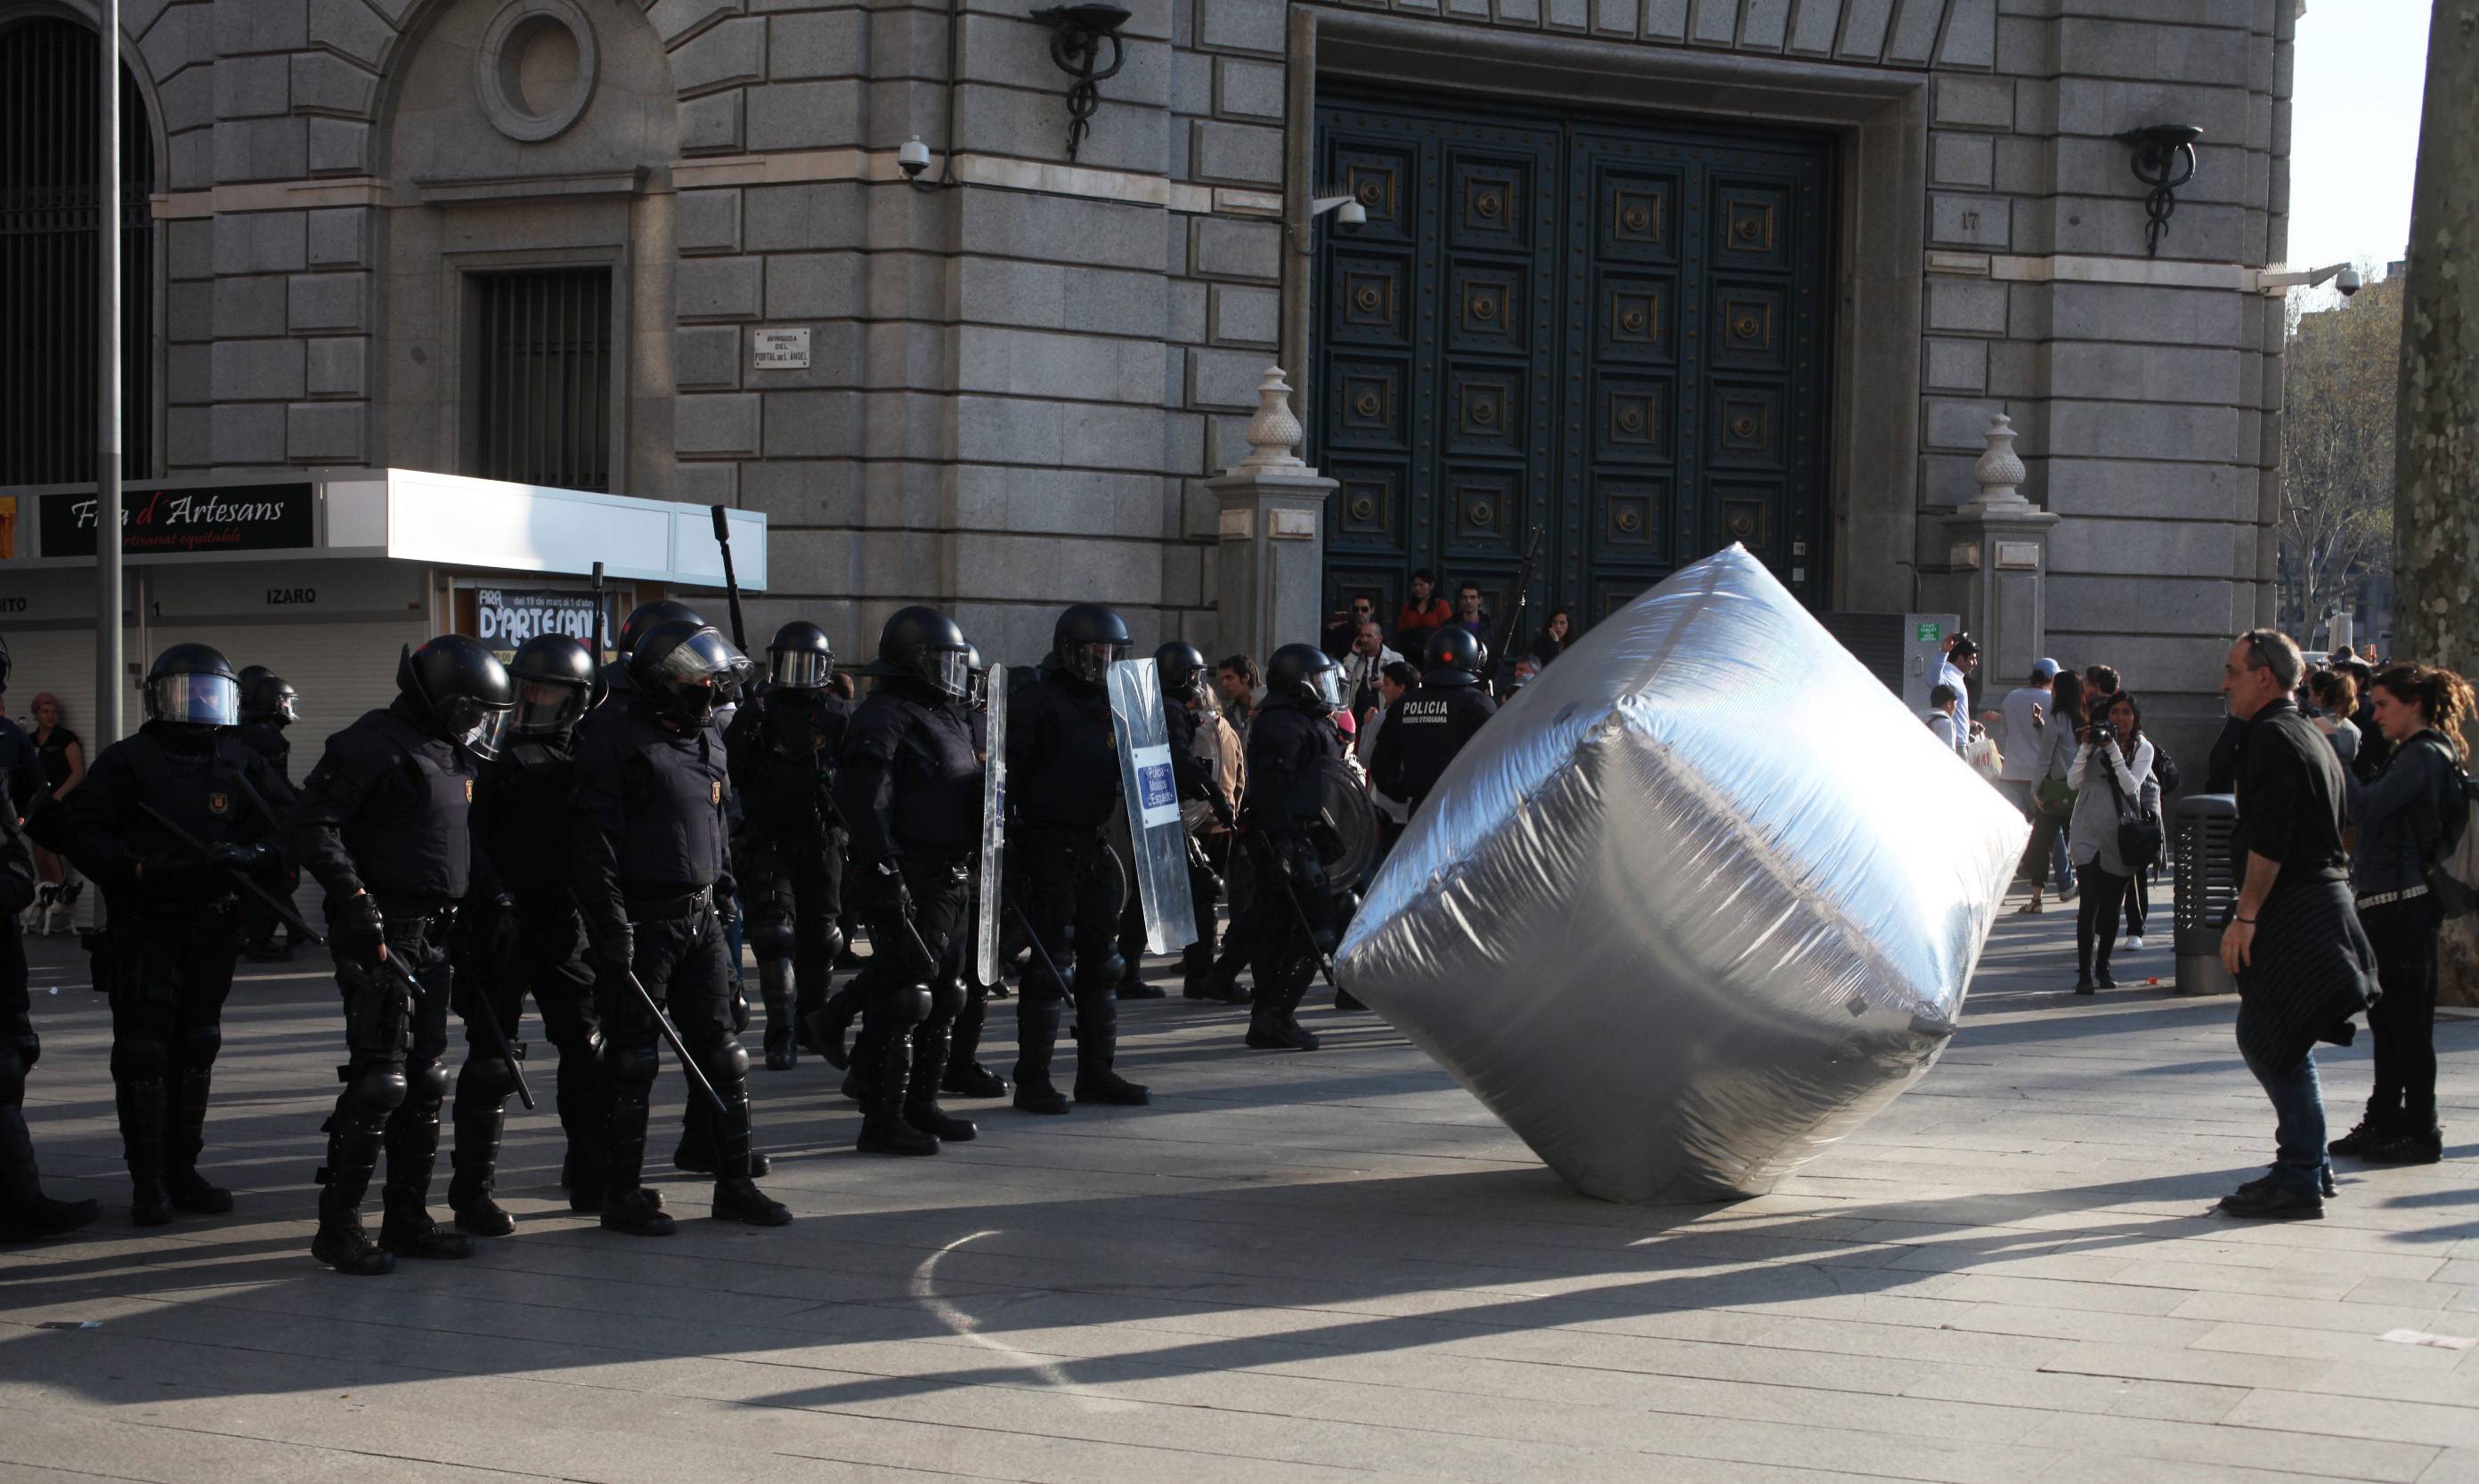 Inflatable cobblestone from Disobedient Objects, action of Eclectic Electric Collective in co-operation with Enmedio collective during the General Strike in Barcelona, 2012 © Oriana Eliçabe/Enmedio.info